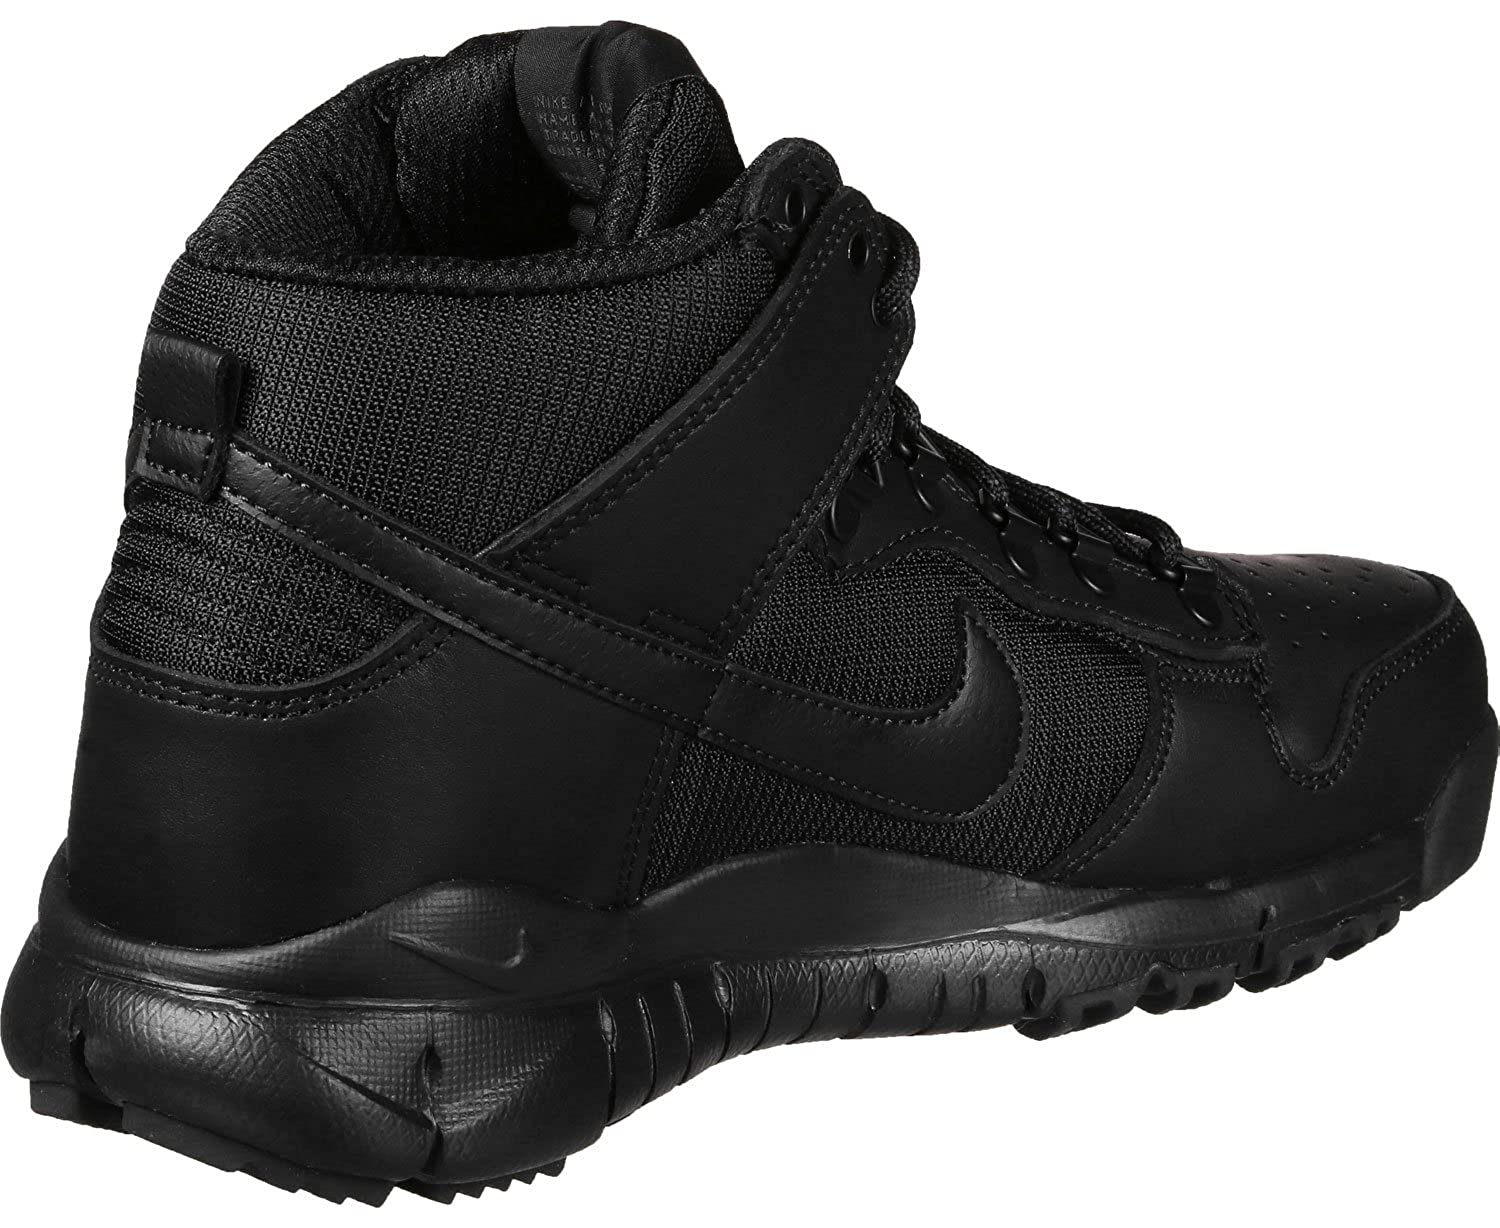 in stock 07b98 a9529 Nike Sb Dunk High Boot Mens Hi Top Trainers 536182 Sneakers ...